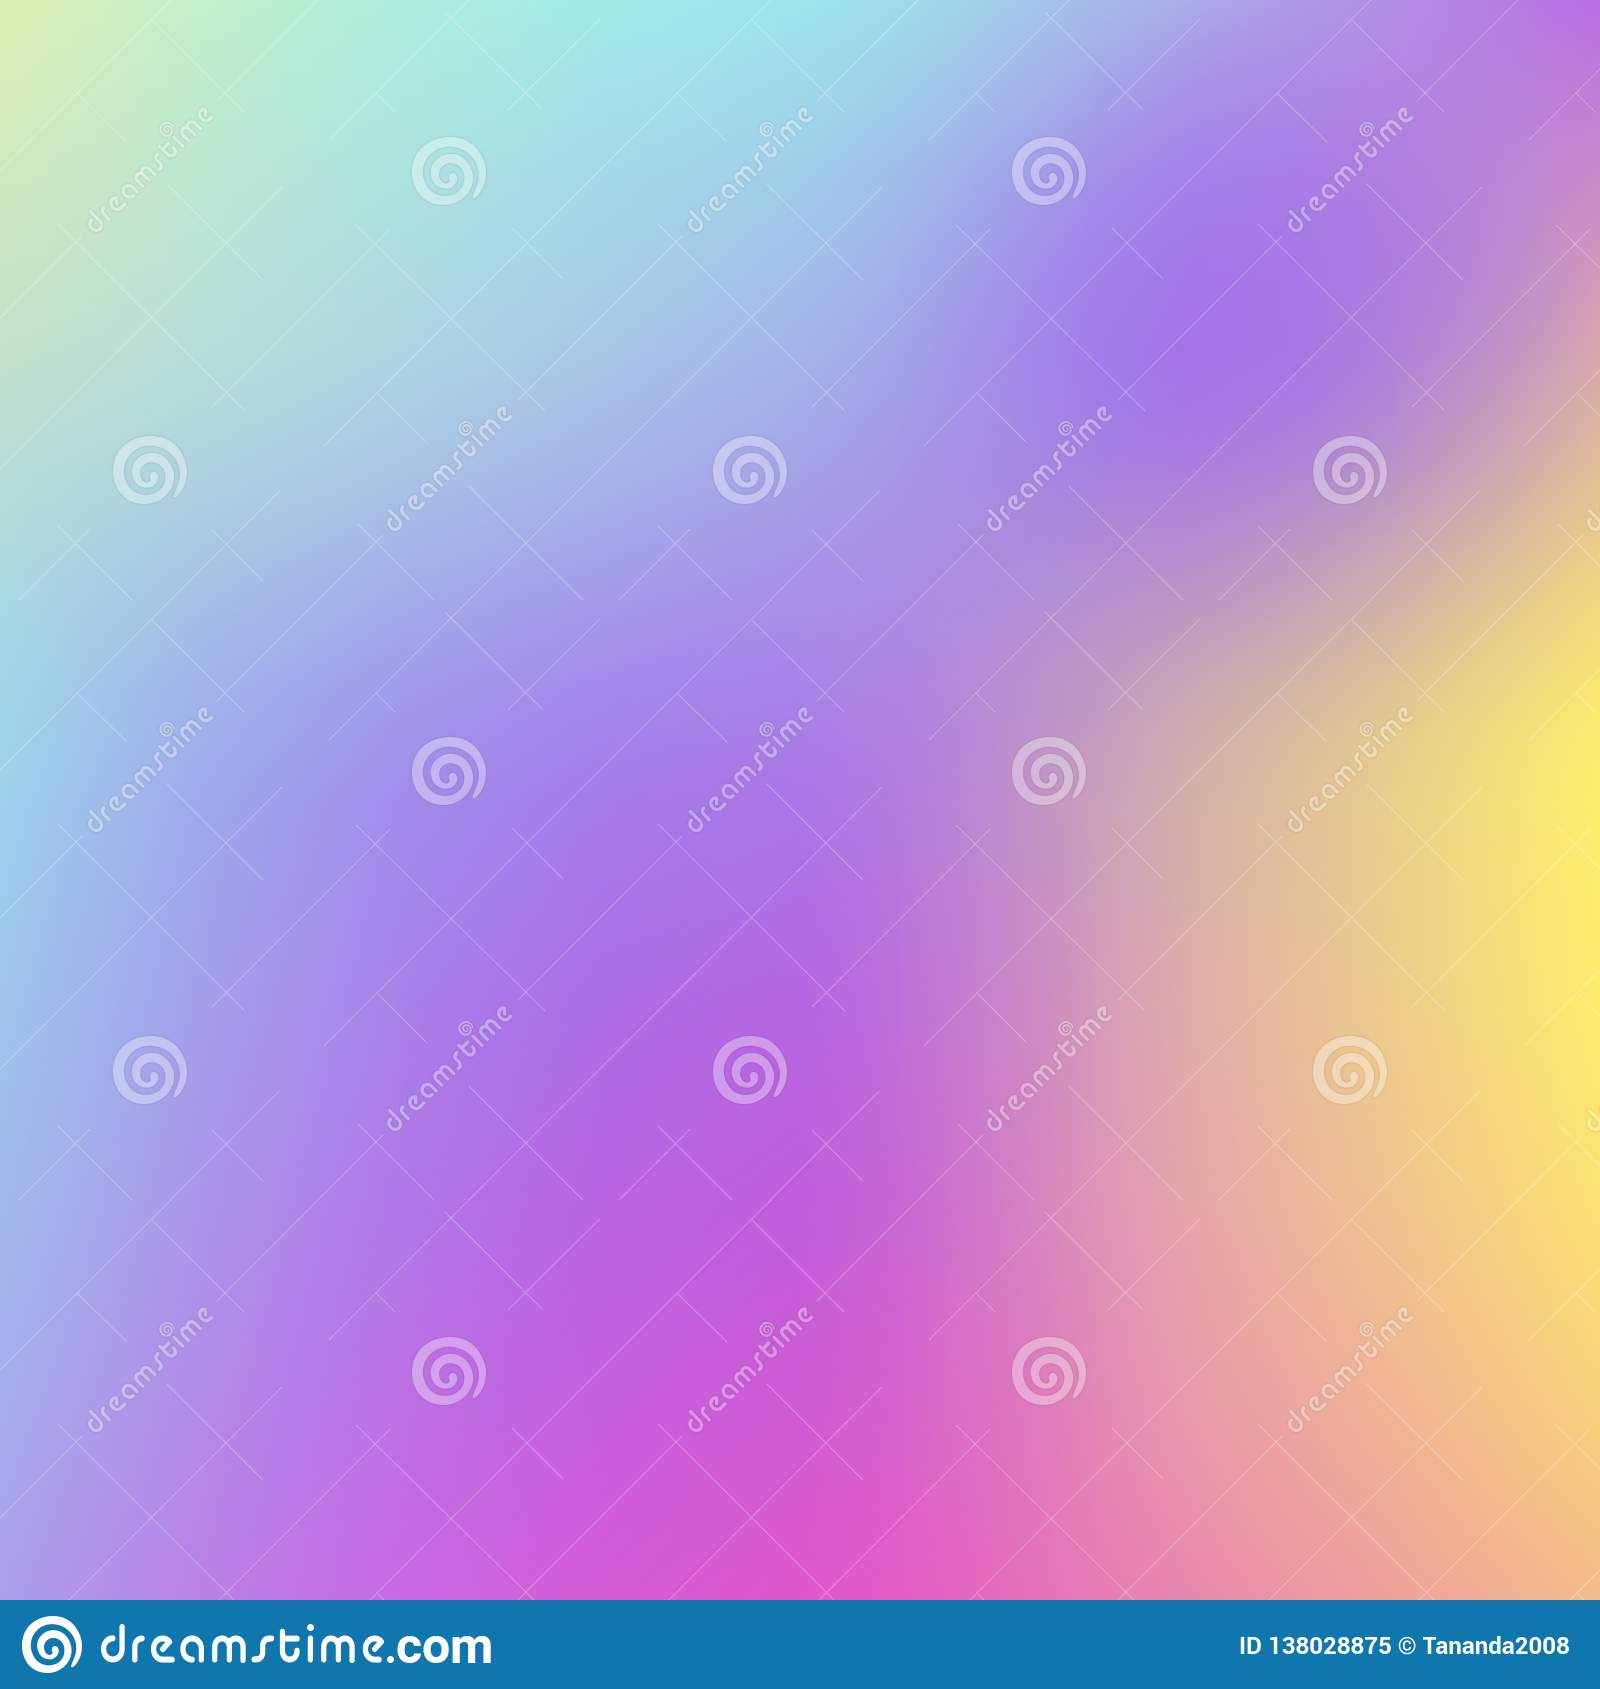 Abstract Holographic Background In Pastel Neon Color Design